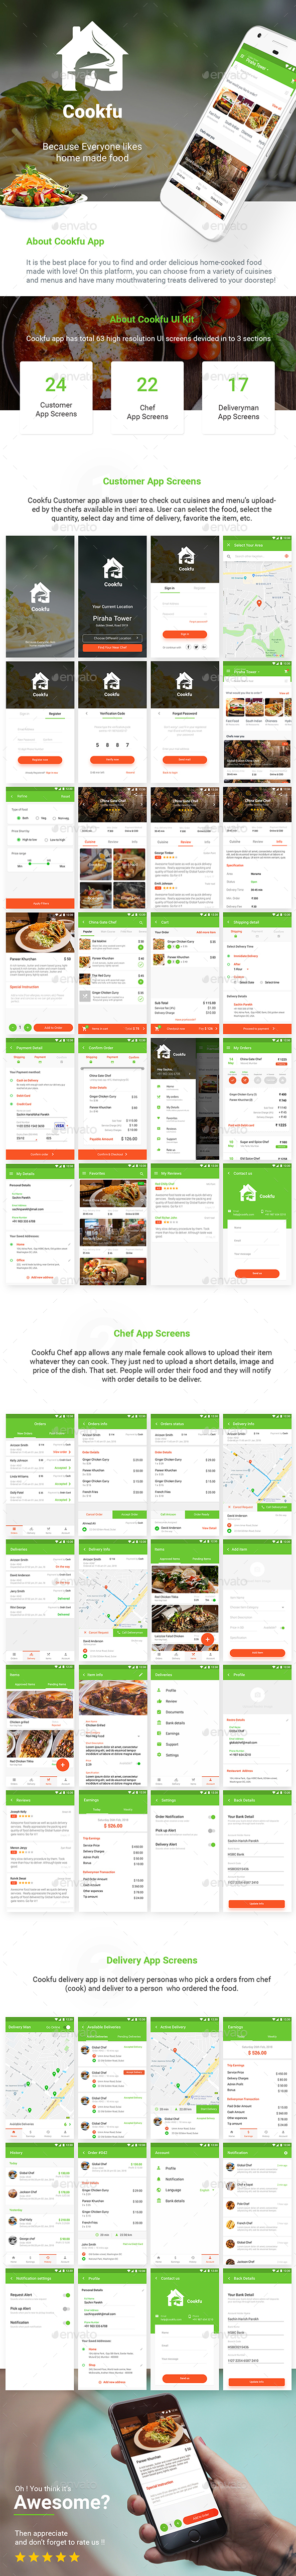 Food Ordering & Delivering App UI kit for Android & iOS | Cookfu - User Interfaces Web Elements